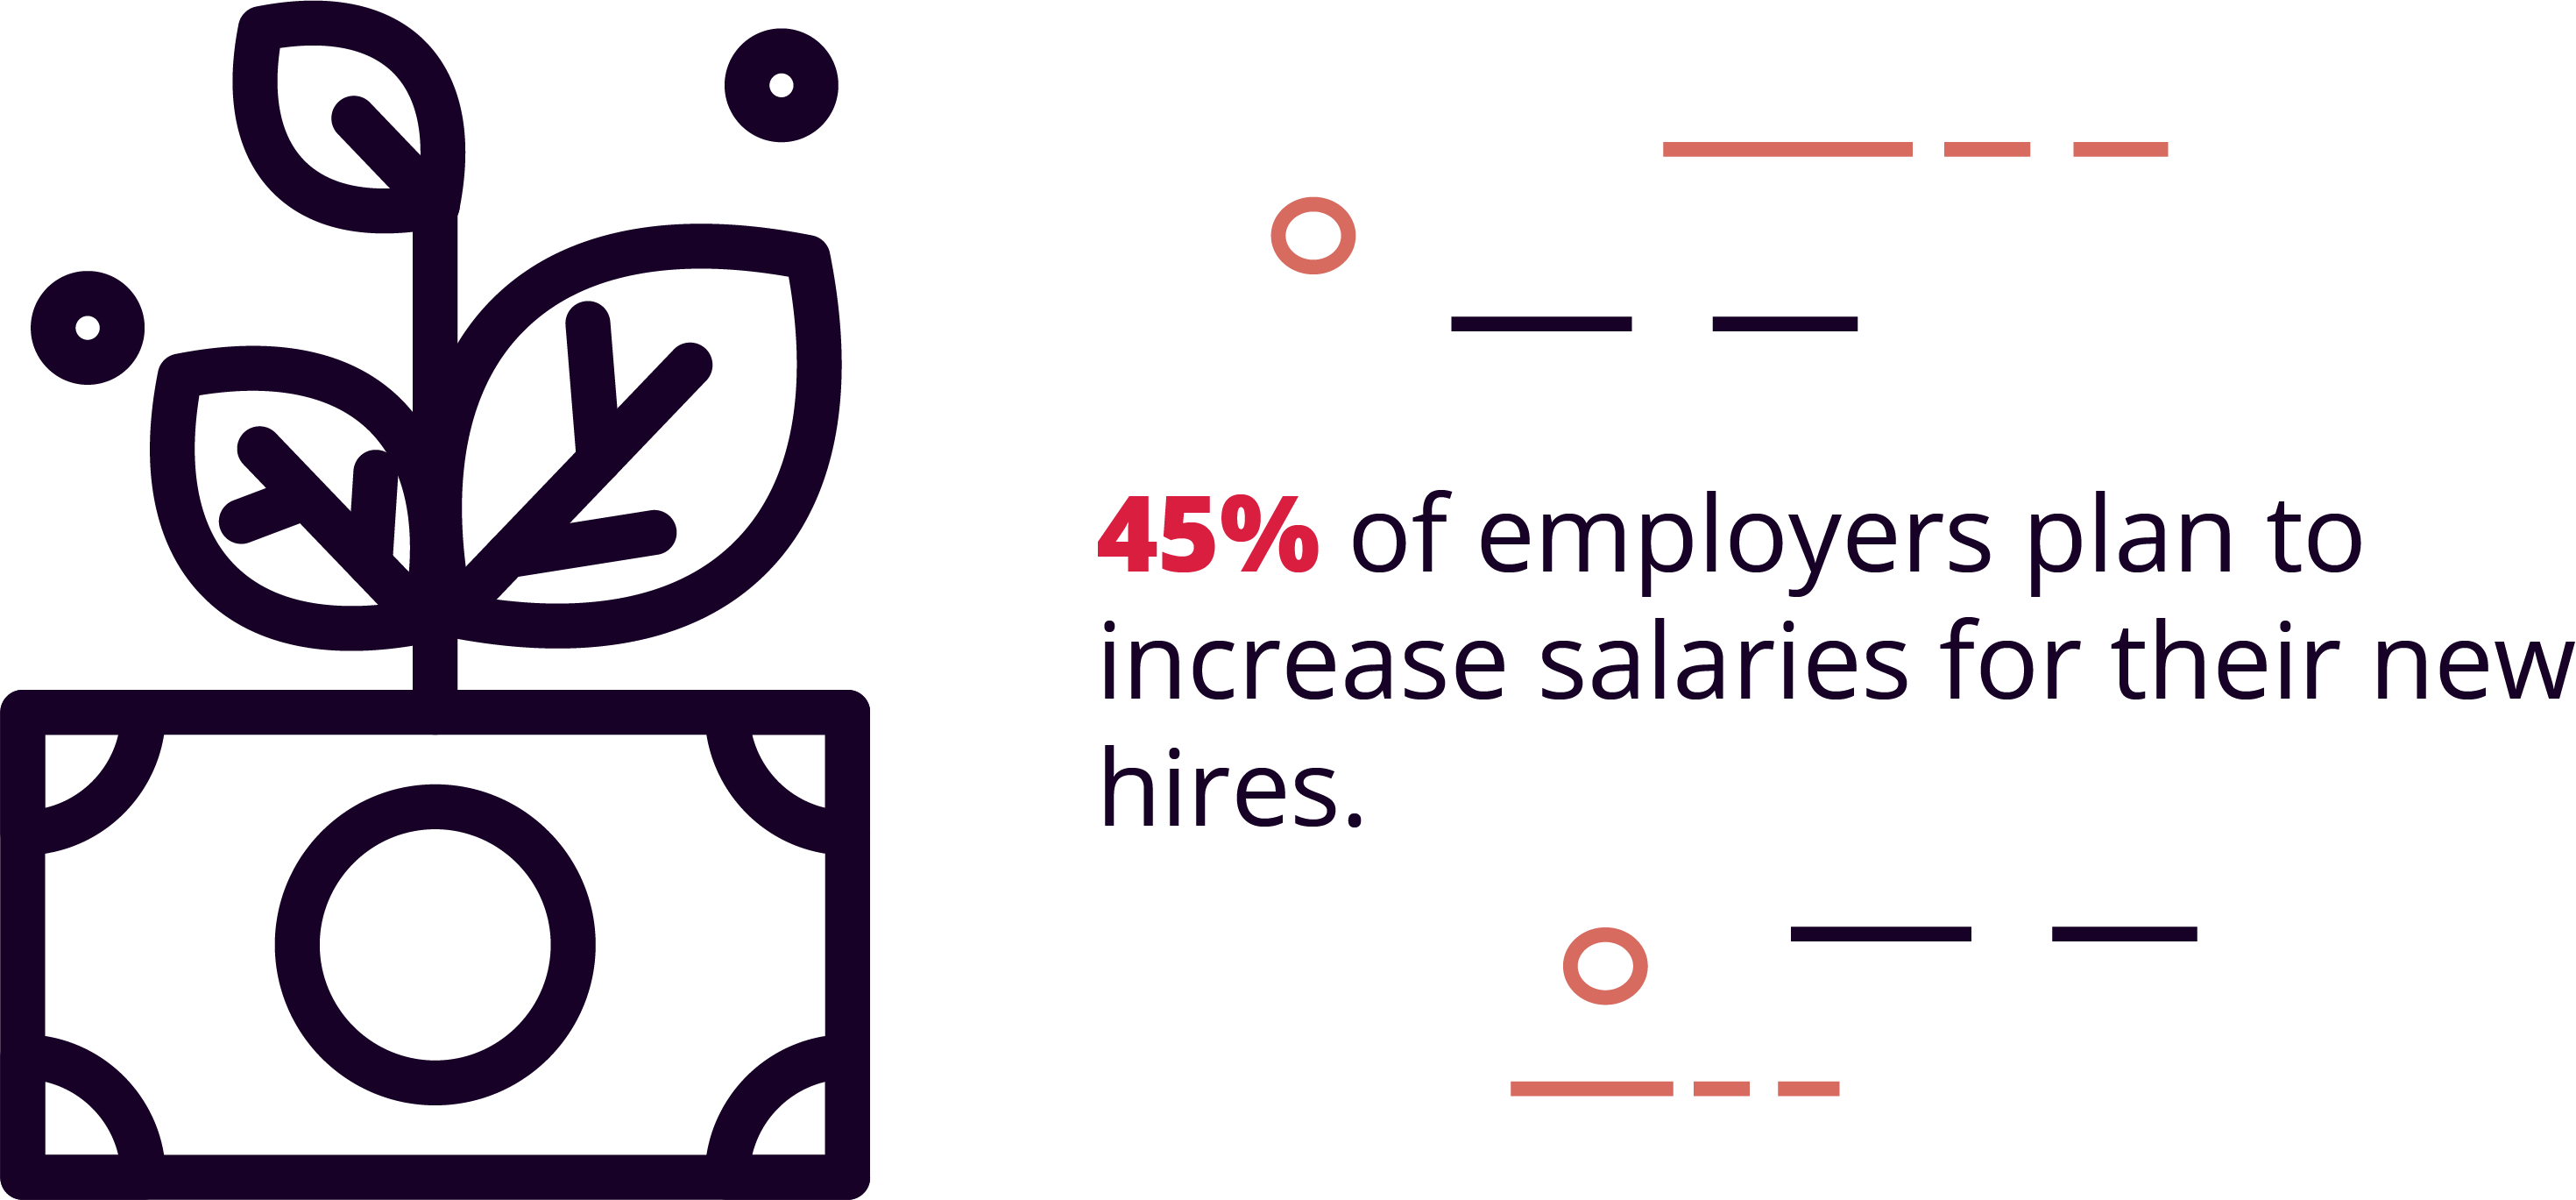 45% of Employers Plan to Increase Salaries for New Hires